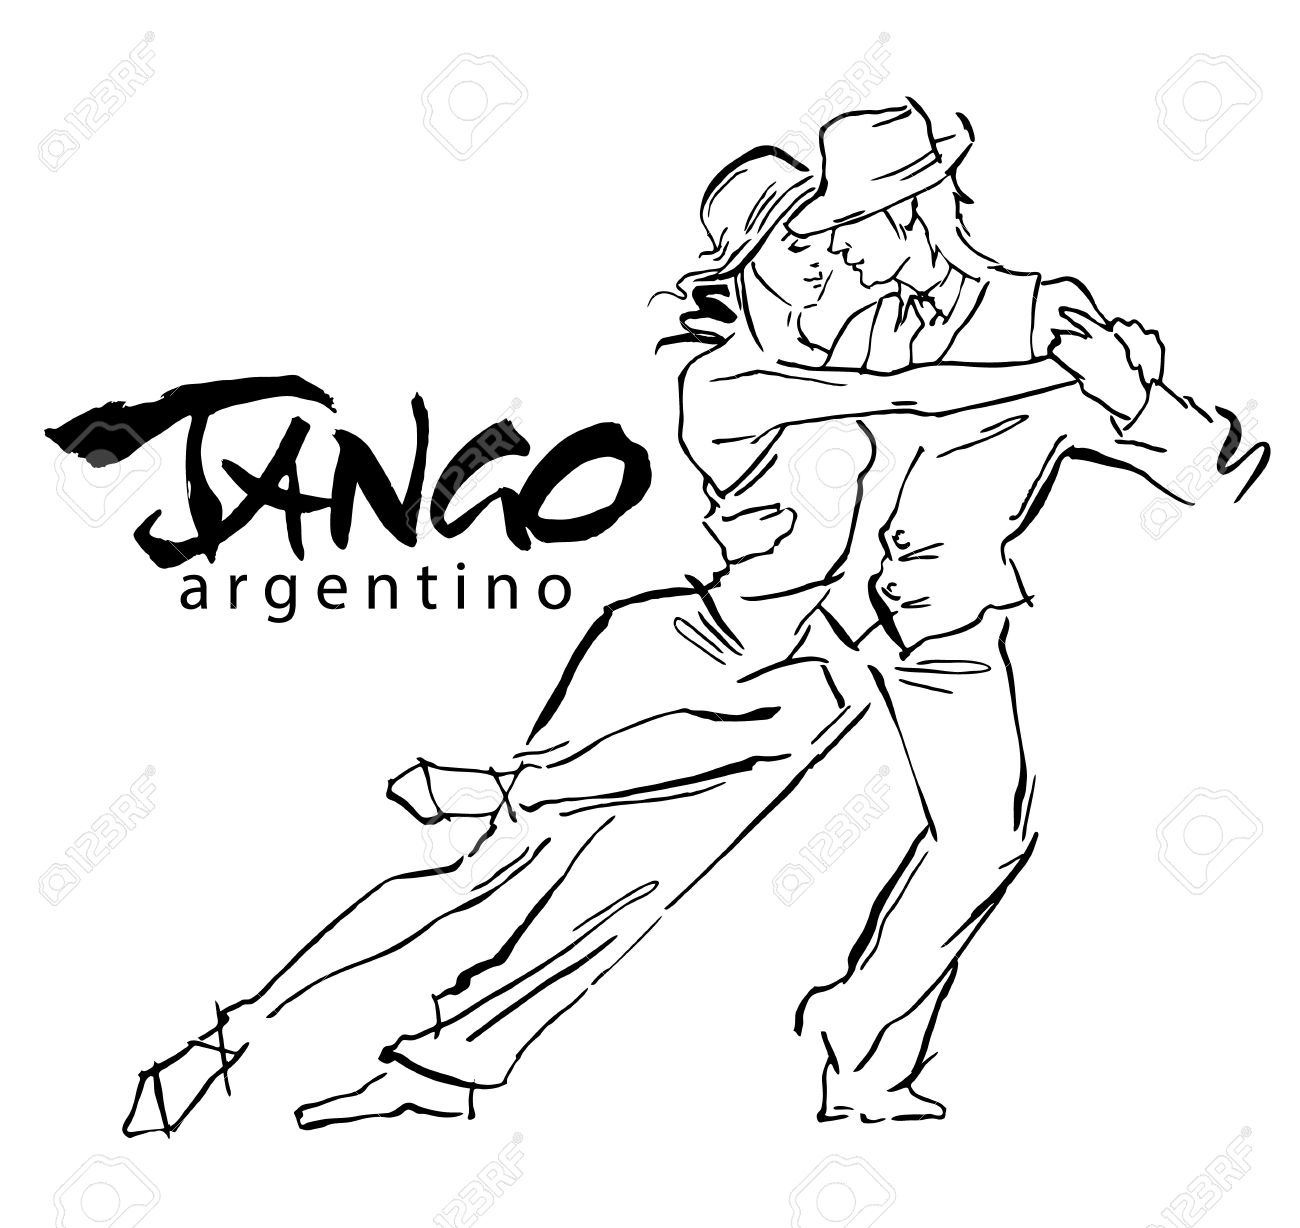 Hand made sketch of tango dancers. Vector illustration. Use for tango studio posters, flayers, web-sites. Tango inscription. - 52004123